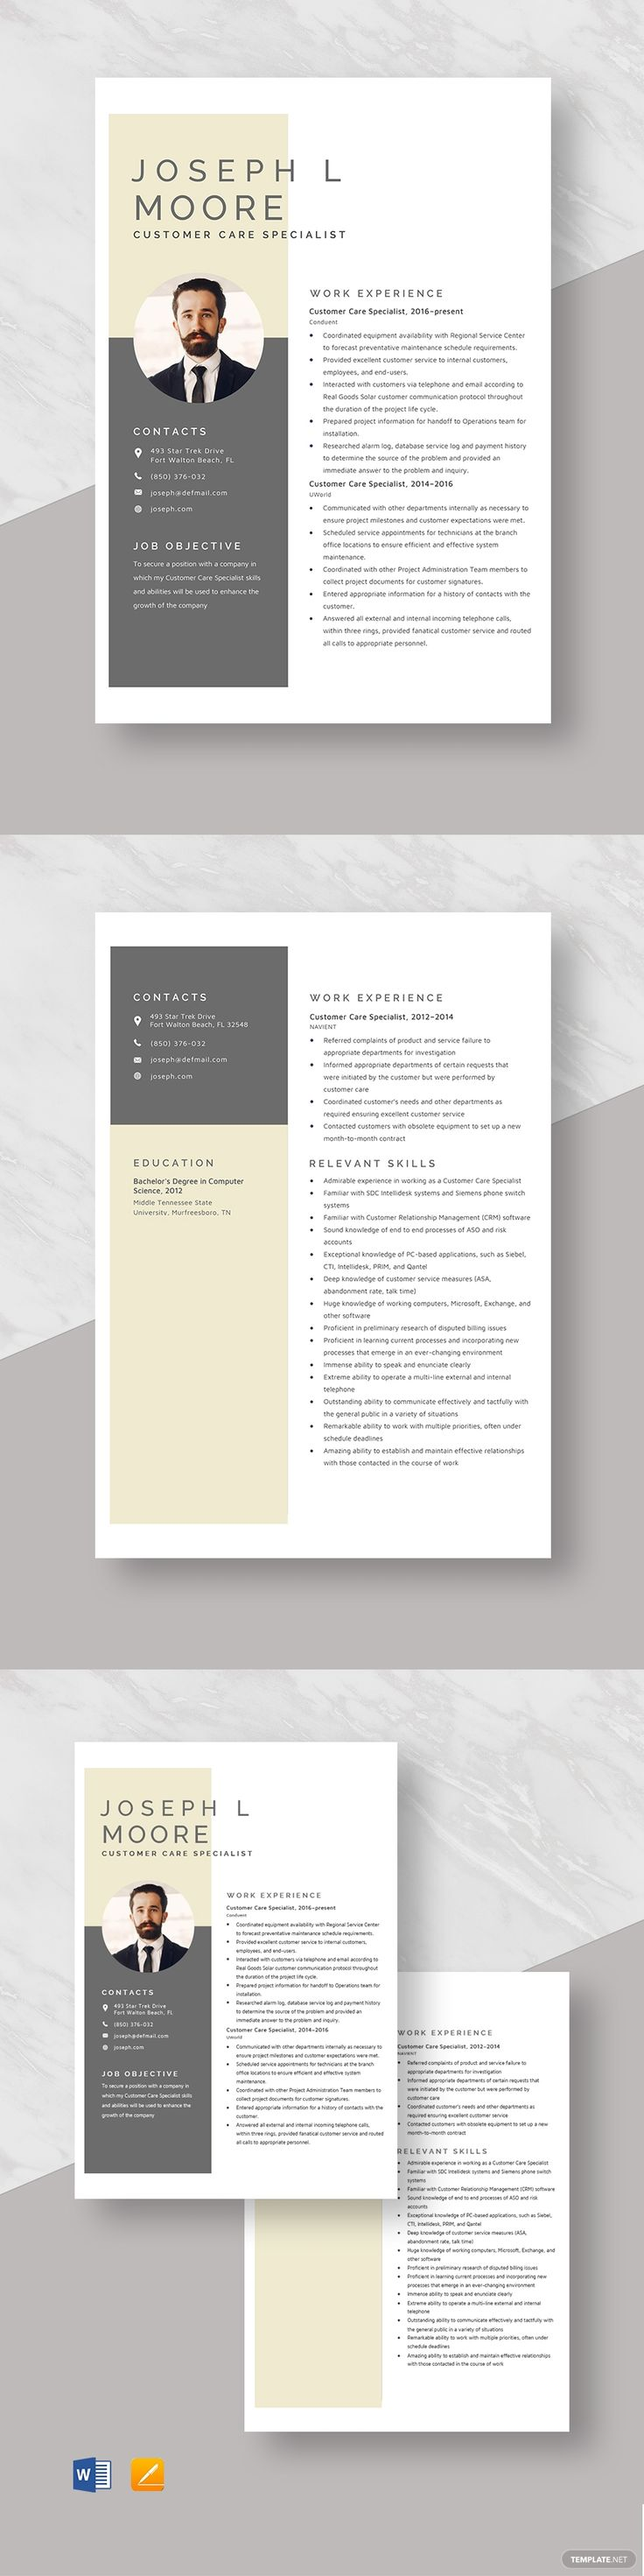 Customer Care Specialist Resume Template in 2020 Resume